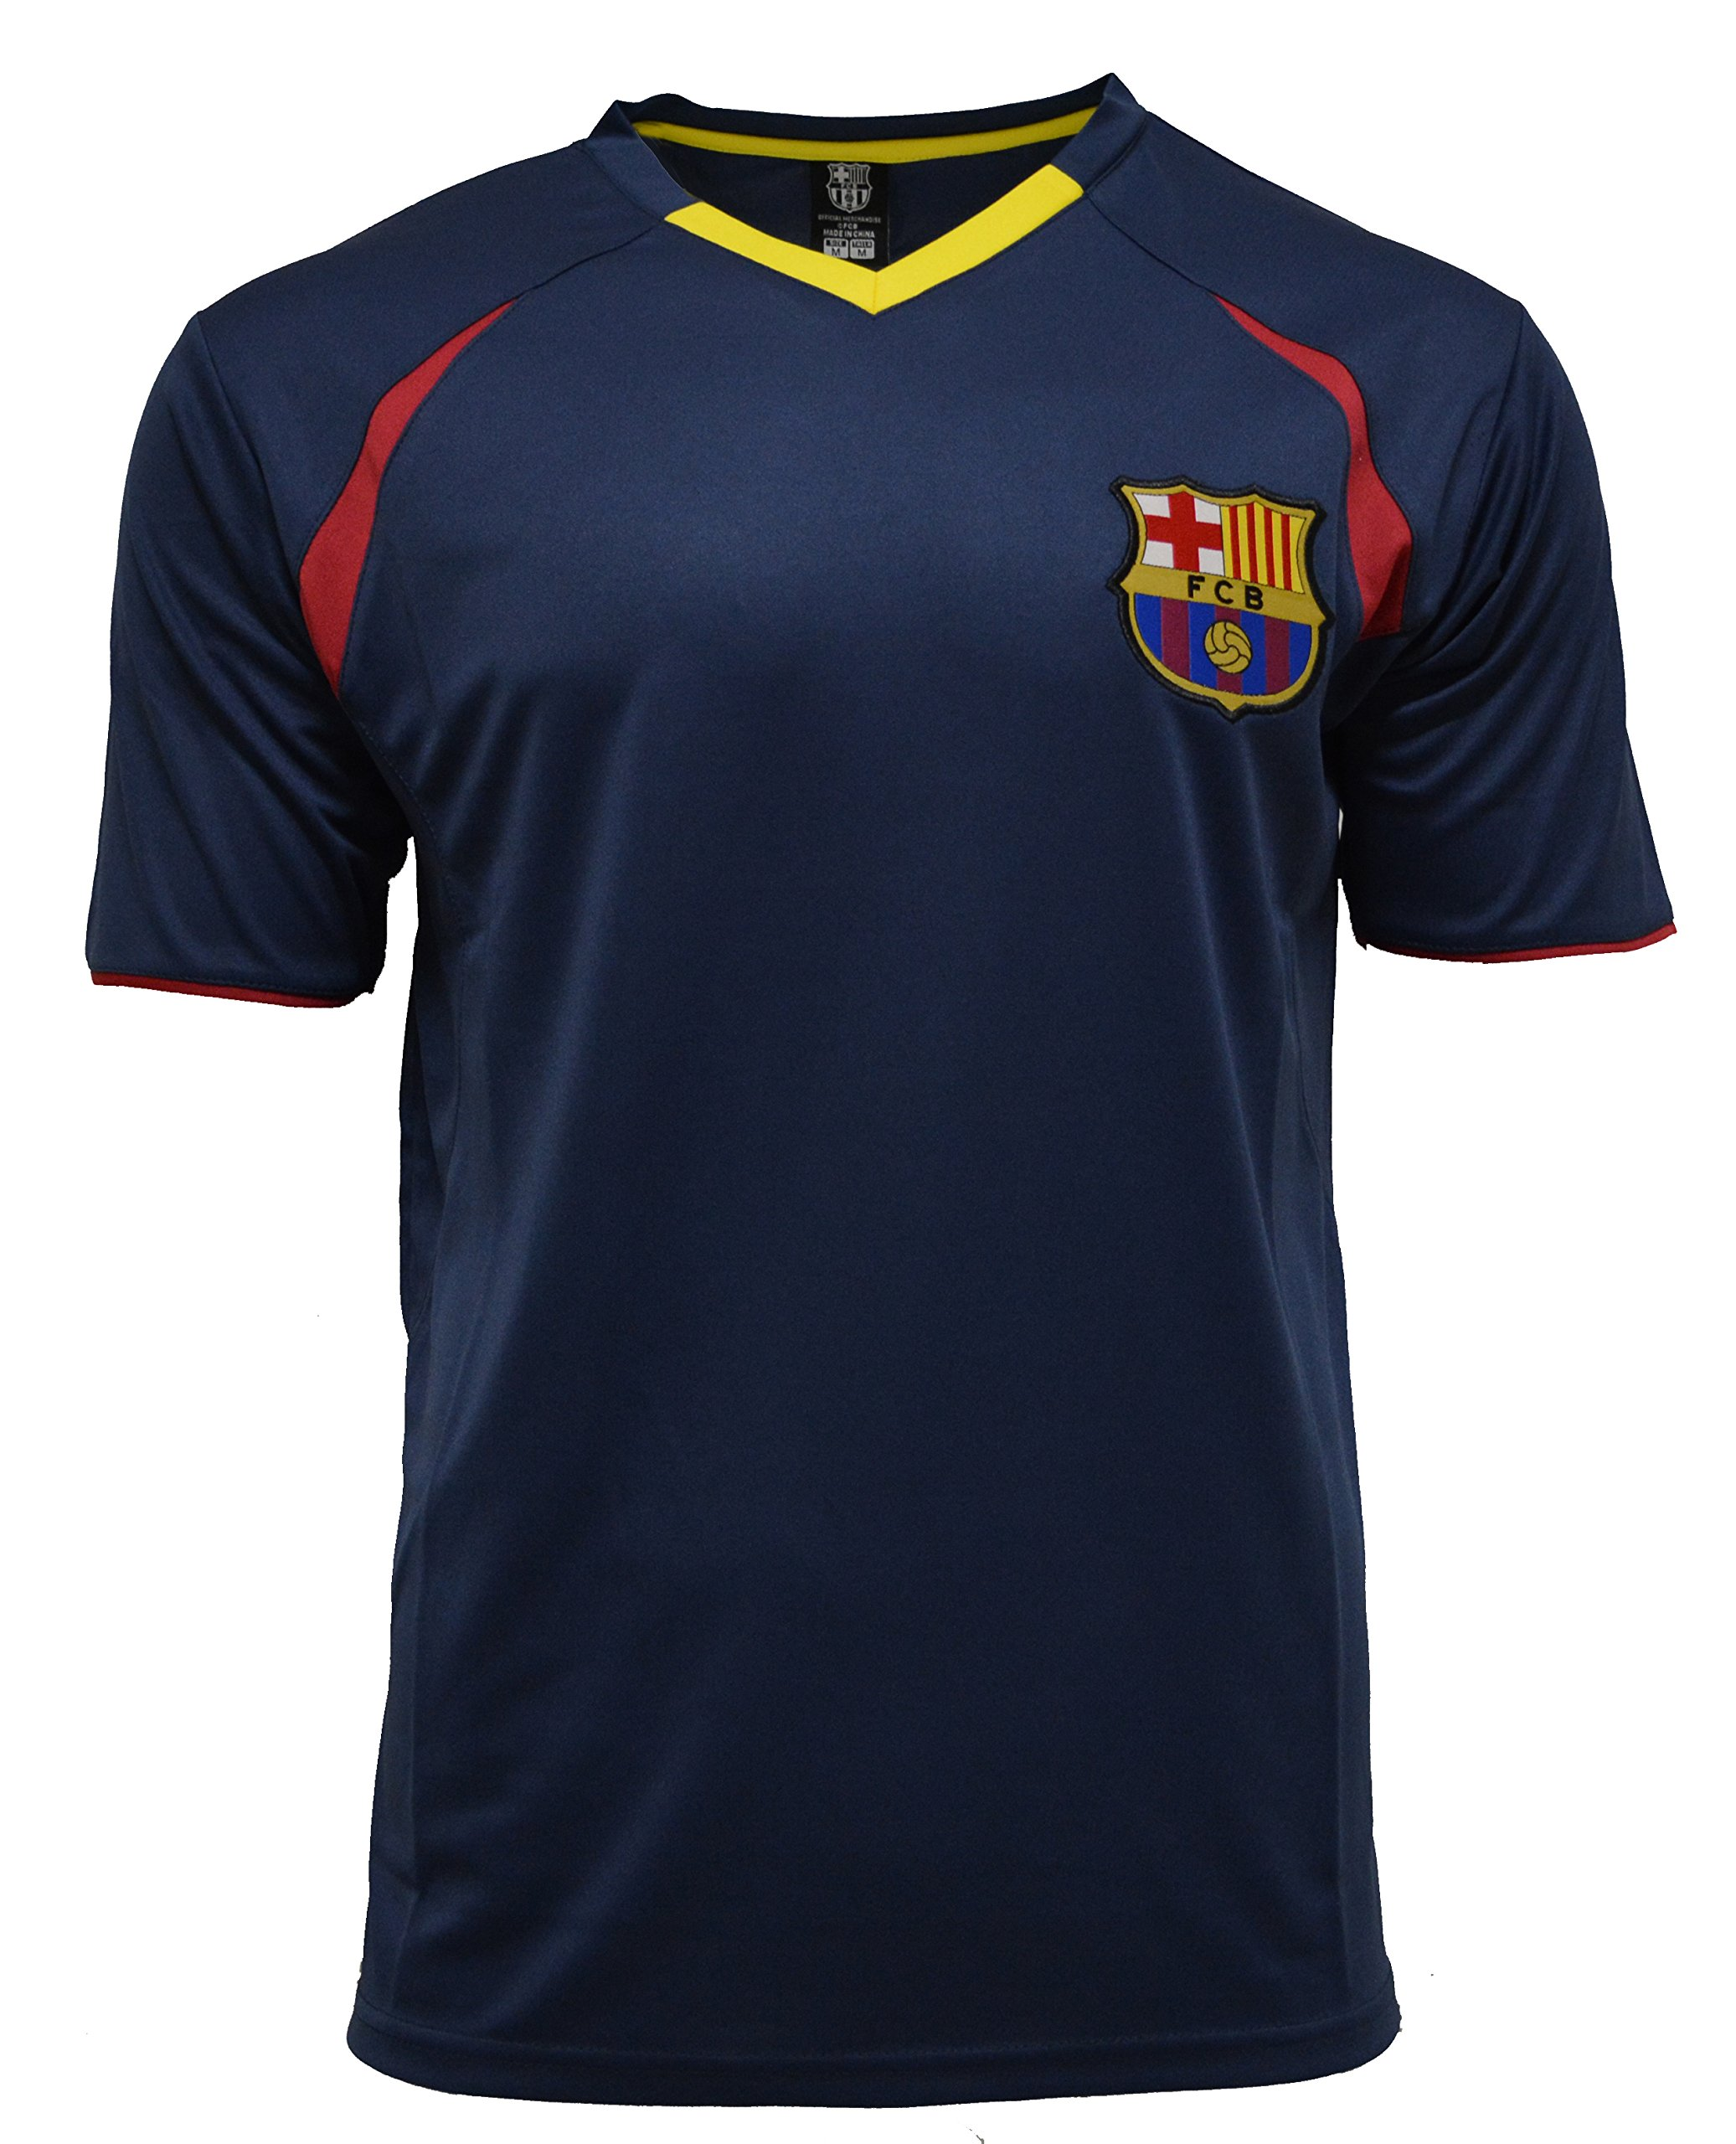 Fc Barcelona Adult Training Jersey Performance Polyester -Shirts - Home -Away (BLUE T1E19